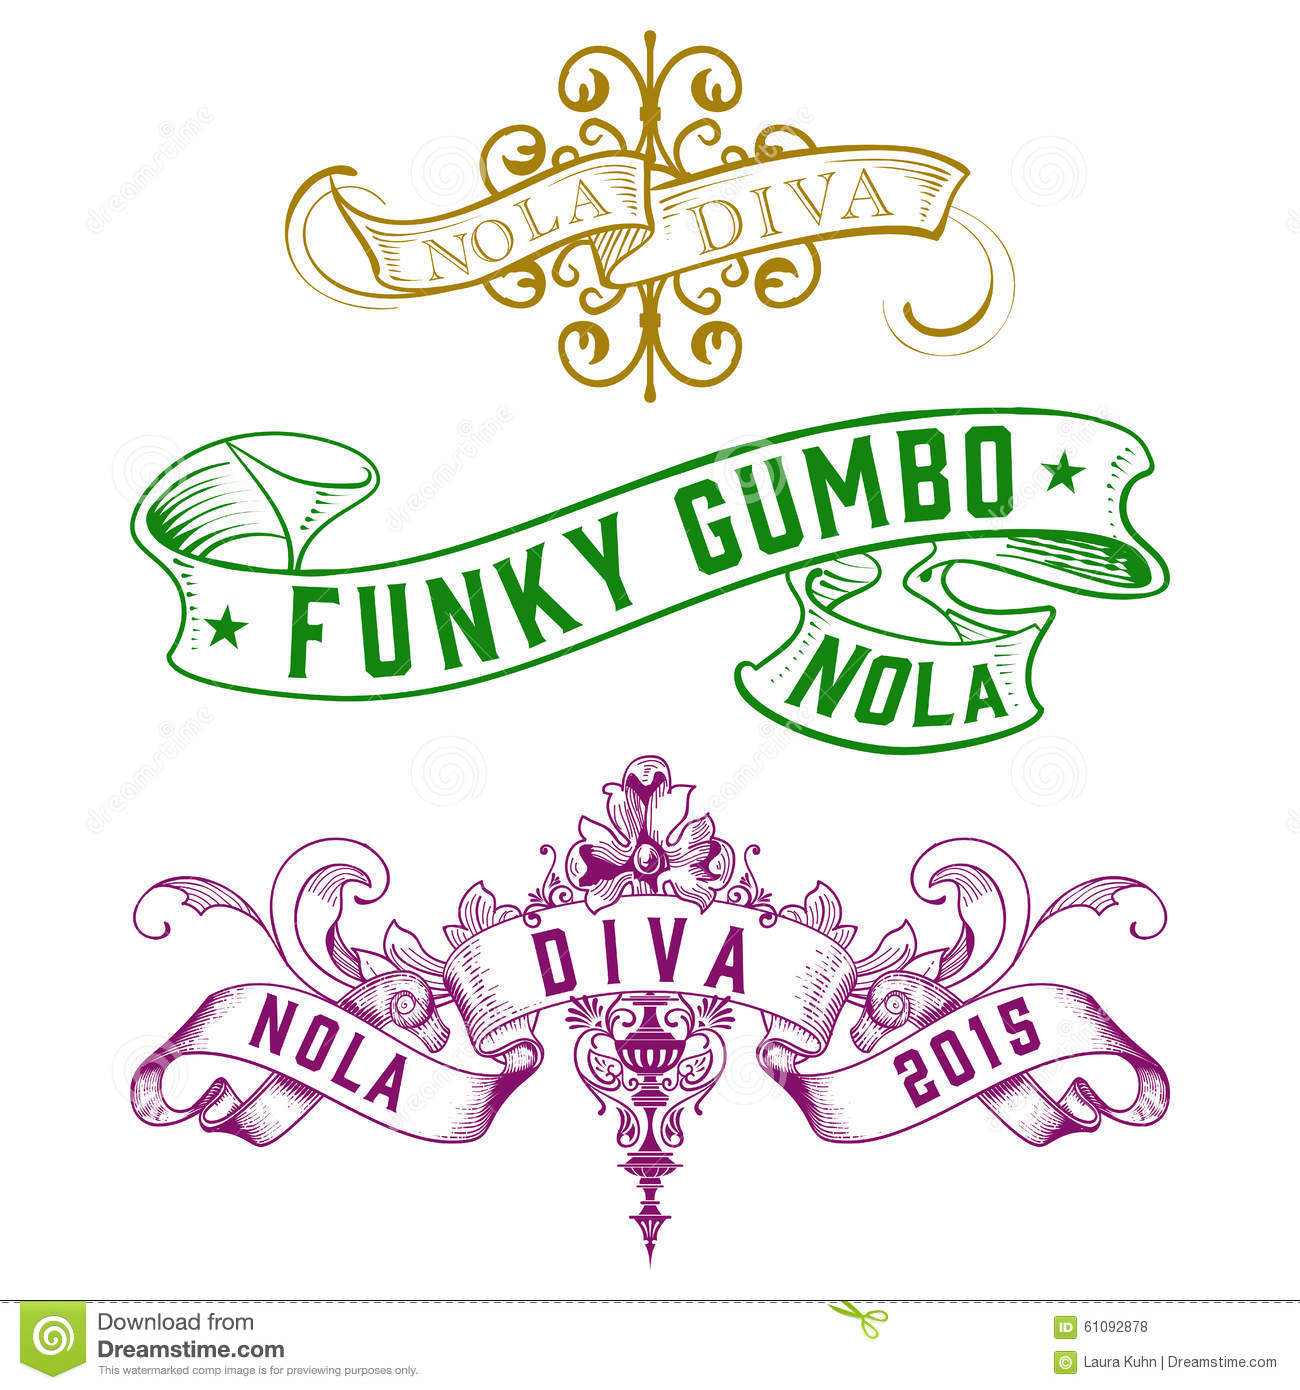 NOLA Diva Funky Gumbo New Orleans Designs Stock